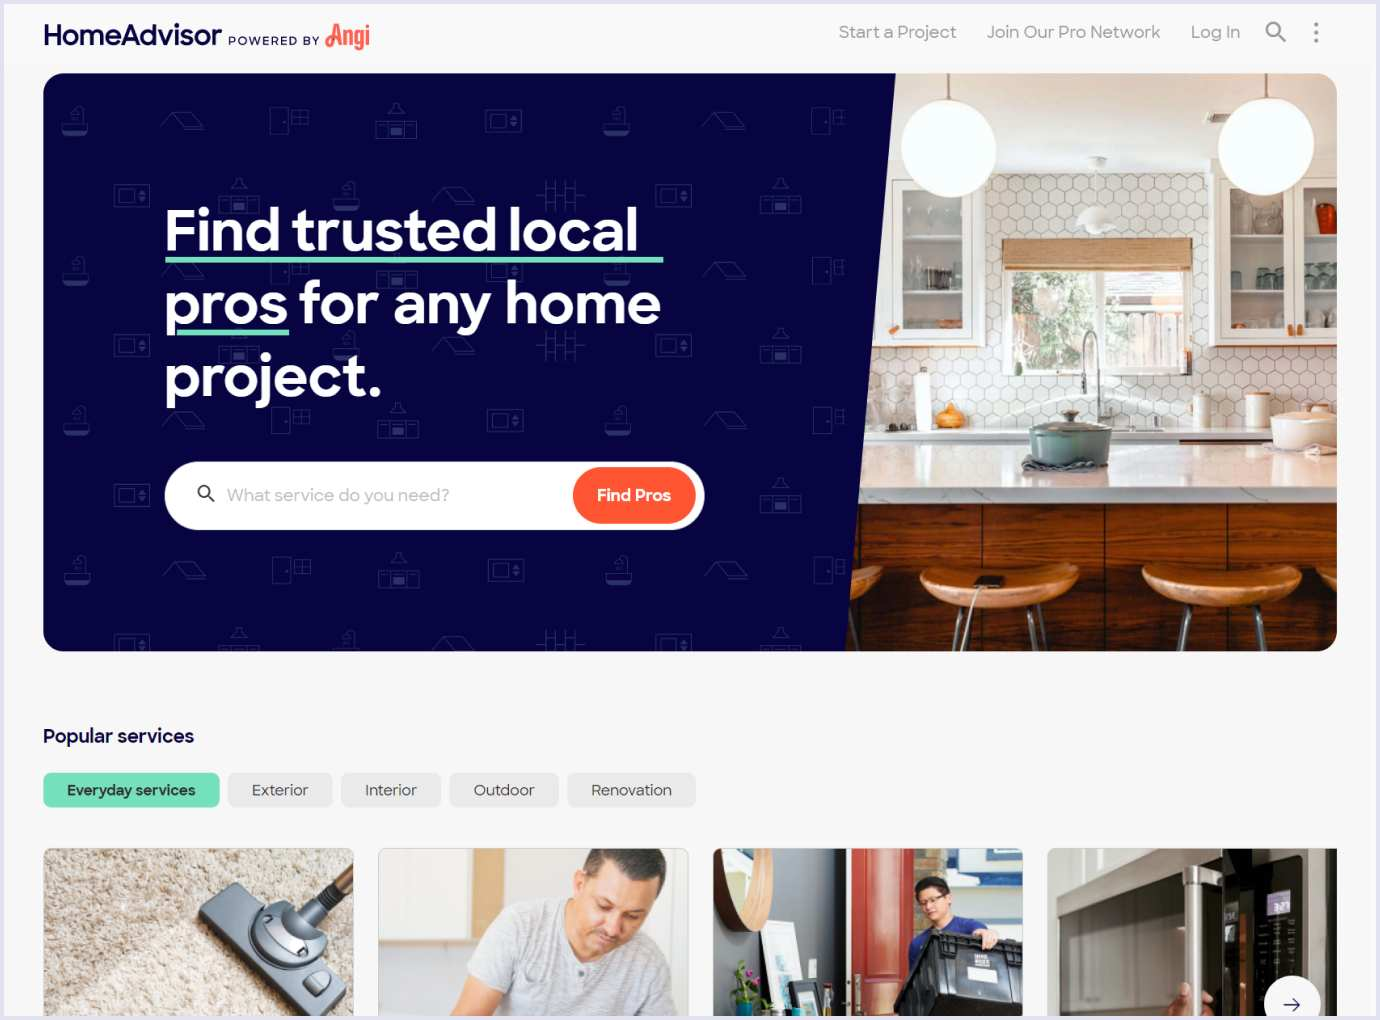 Niche strategy that helps build a rating website like Yelp